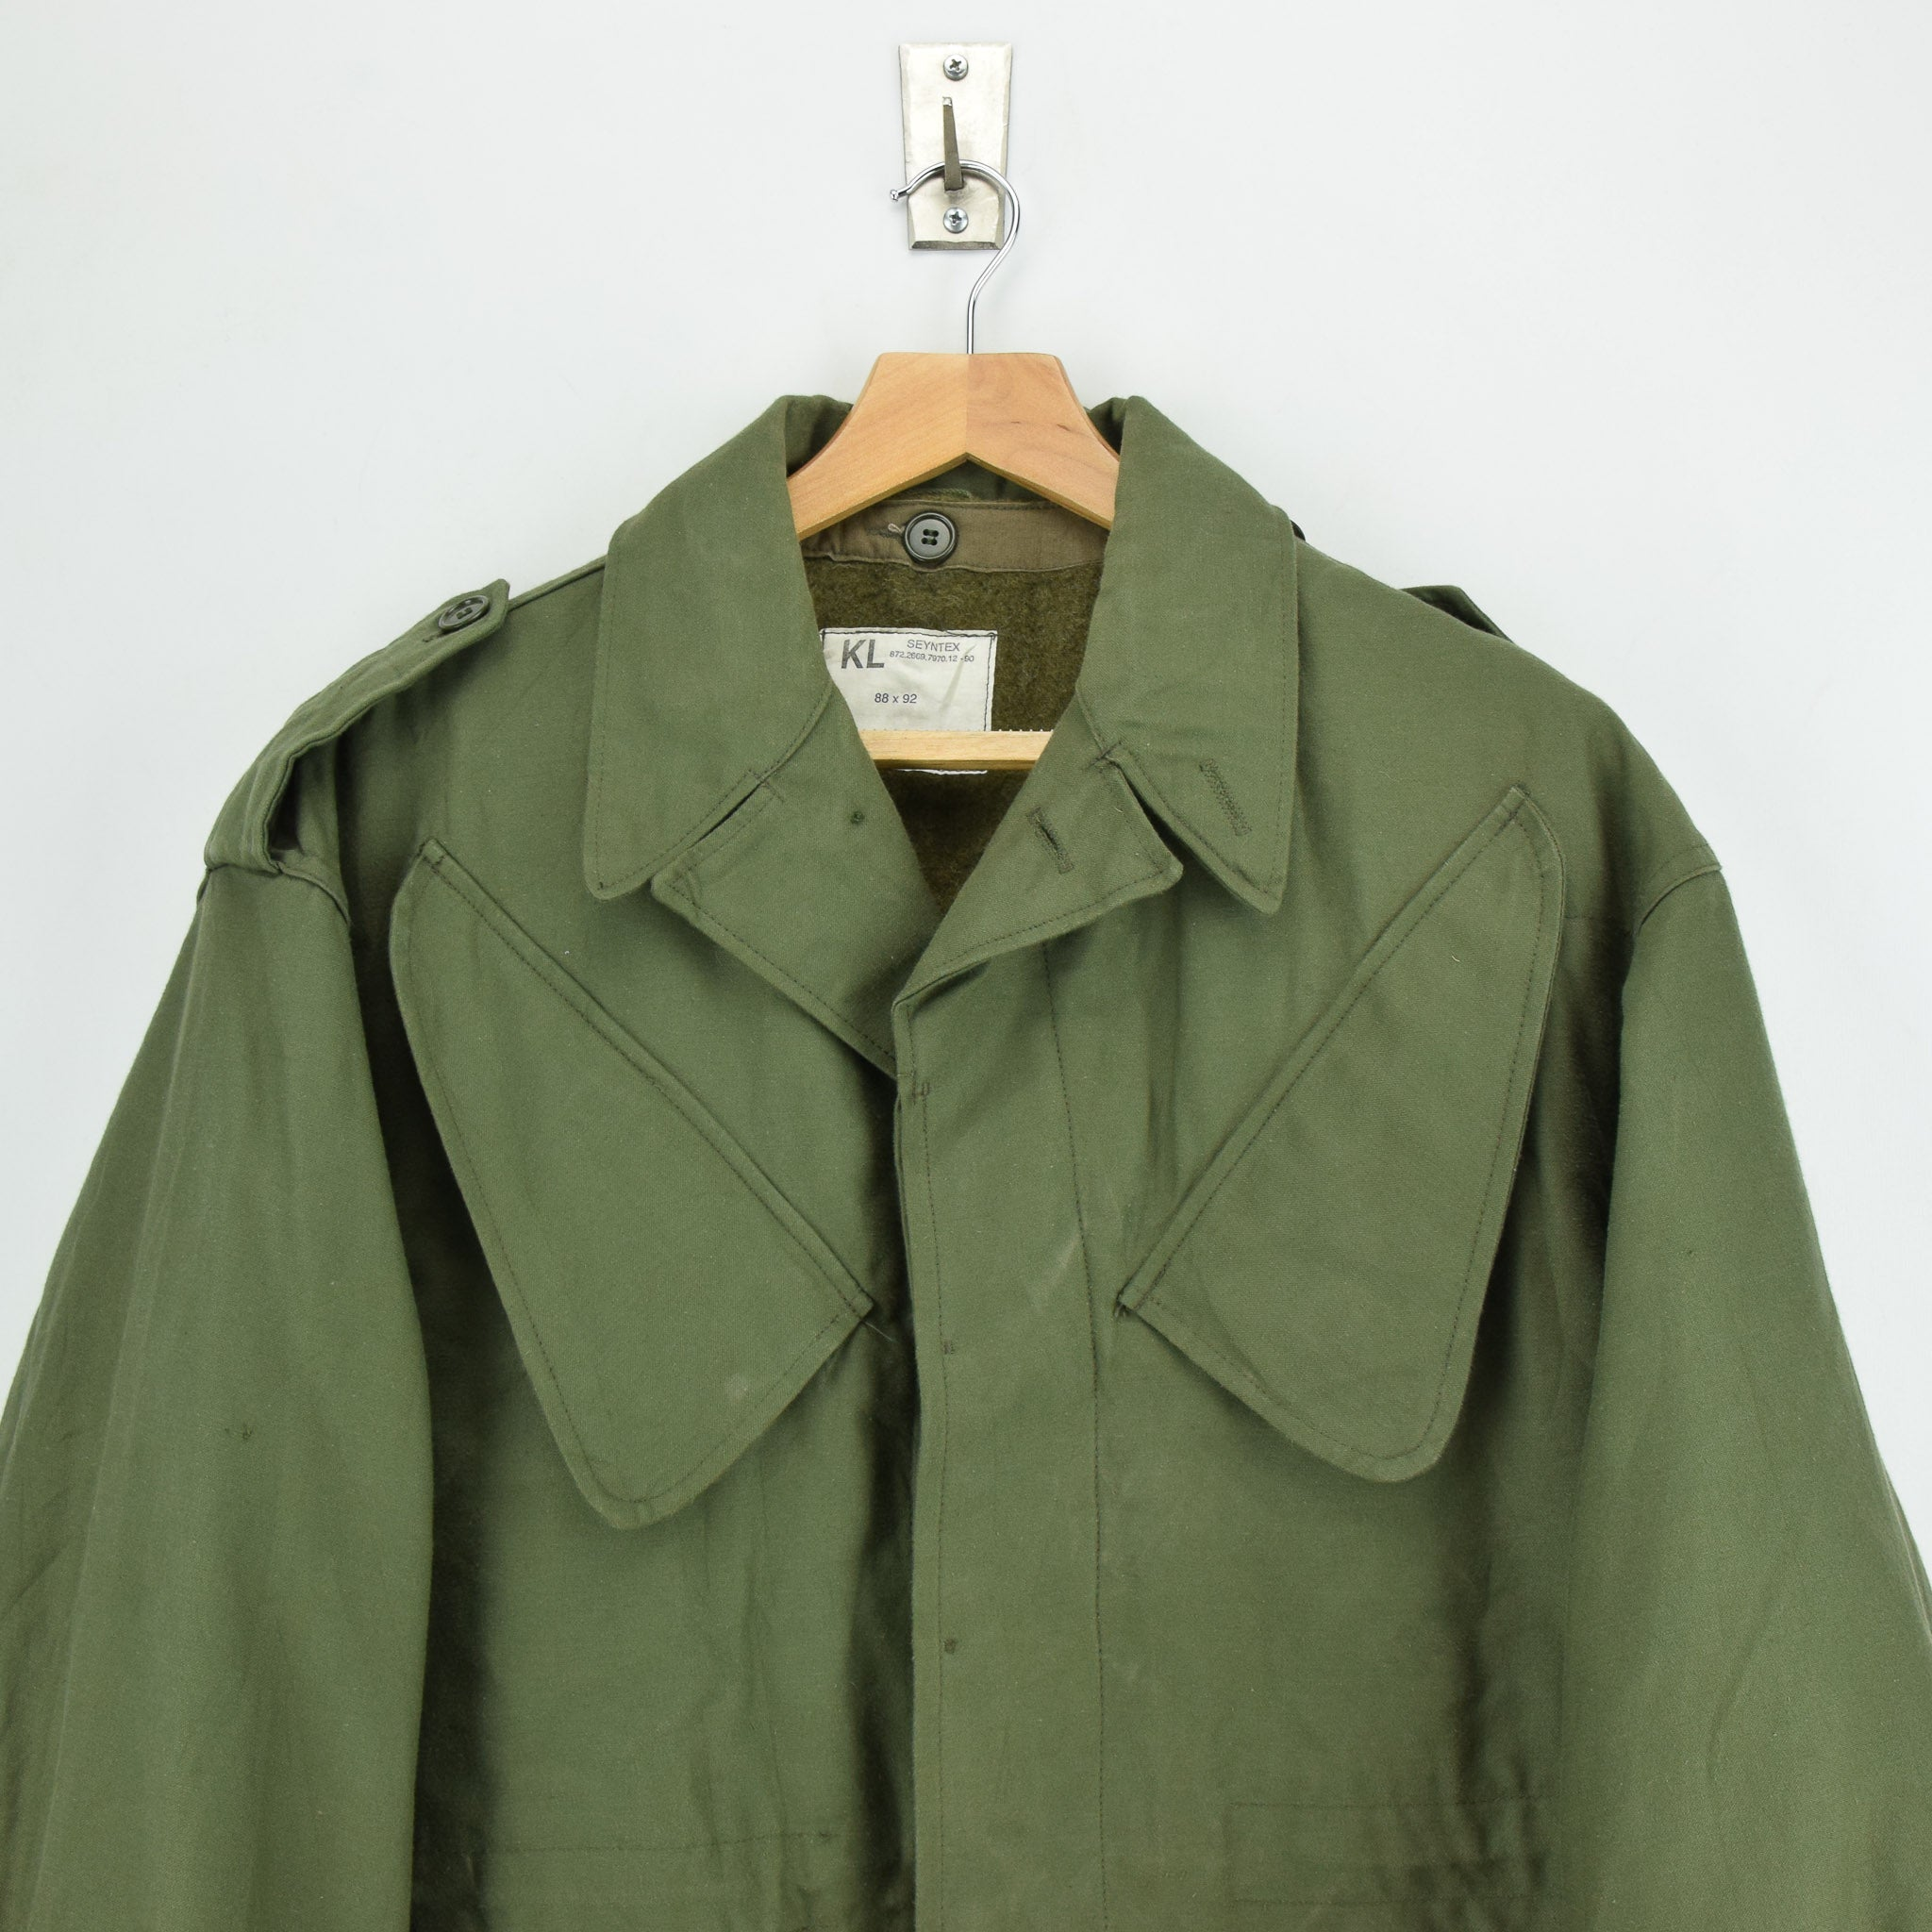 Vintage 80s Seyntex Green Dutch Army Cotton Military Field Jacket with Liner M chest